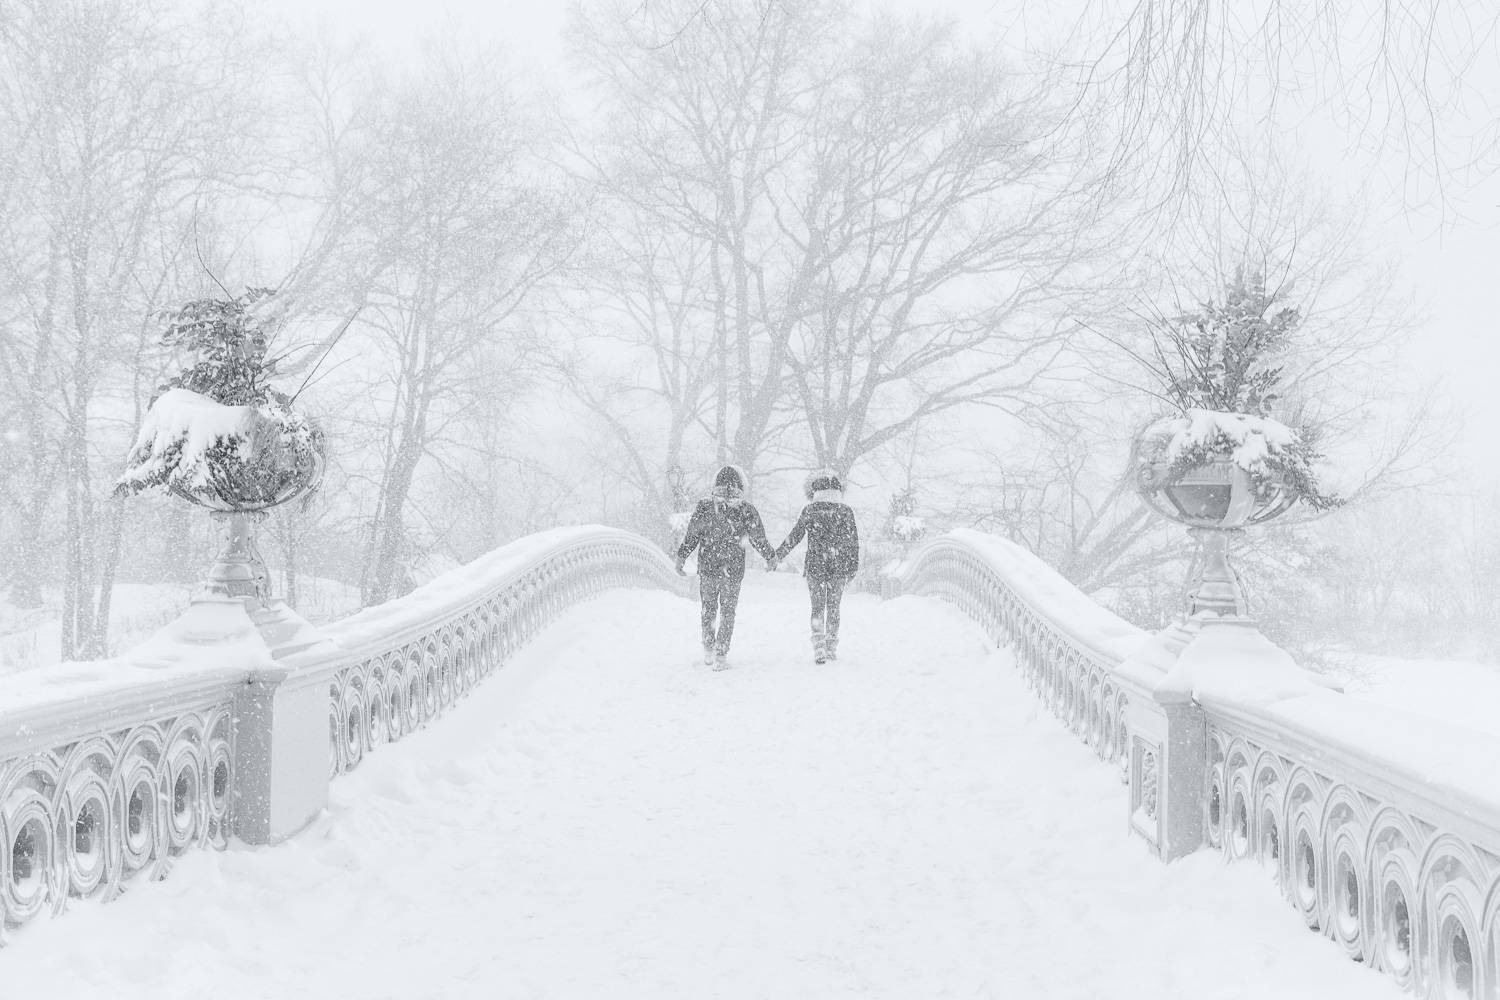 Image of couple walking over a snow covered Bow Bridge in Central Park, NYC (Photo Credit: Shutterstock)